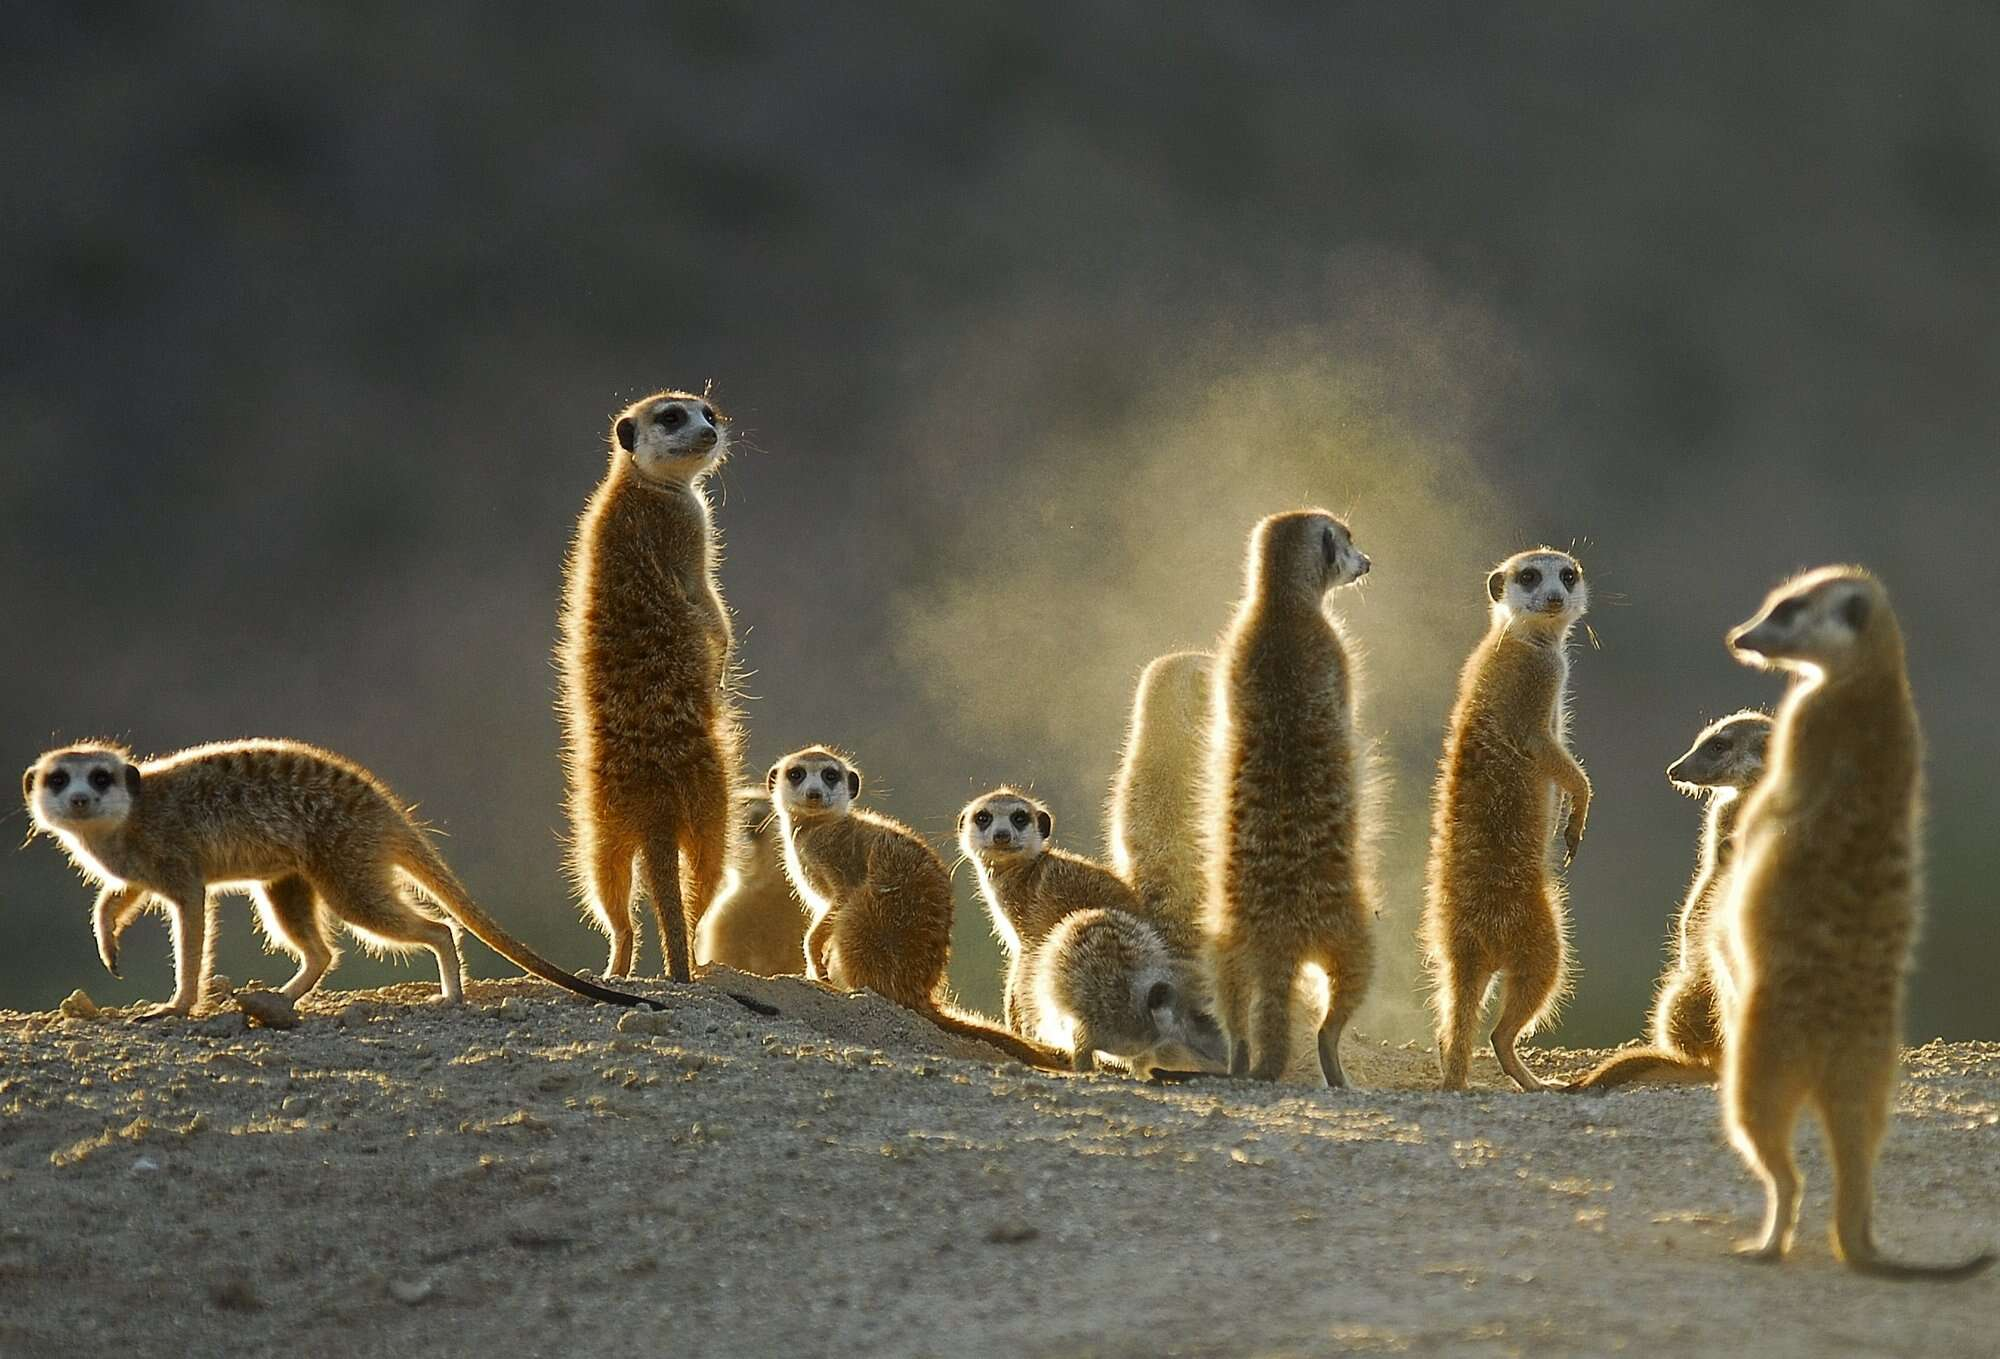 Meerkat Self-drive Safari – Cape - including Kgalagadi Transfrontier Park, and Augrabies Falls National Park.